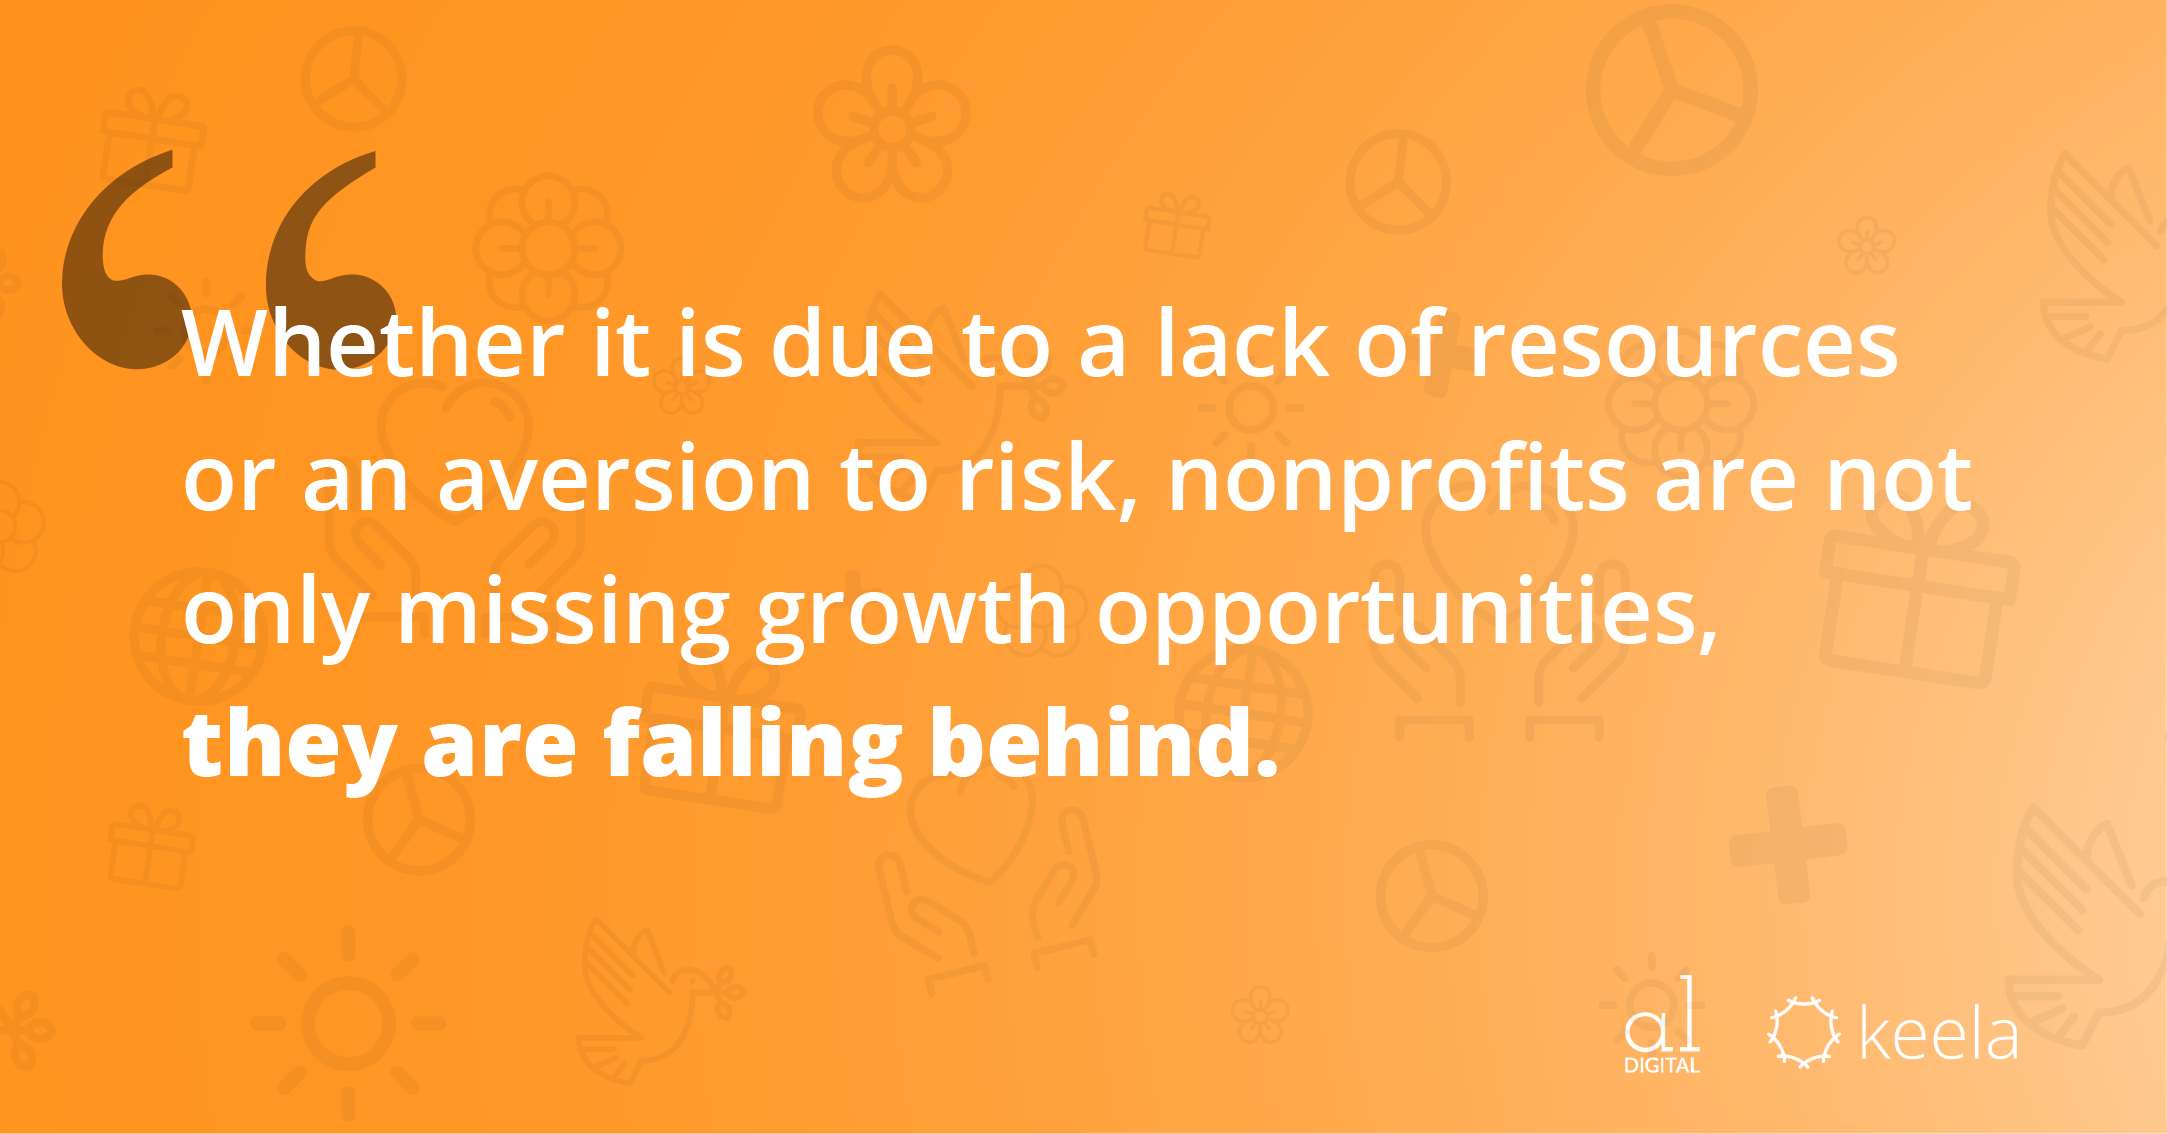 Whether it is due to a lack of resources or an aversion to risk, nonprofits are not only missing growth opportunities, they are falling behind.